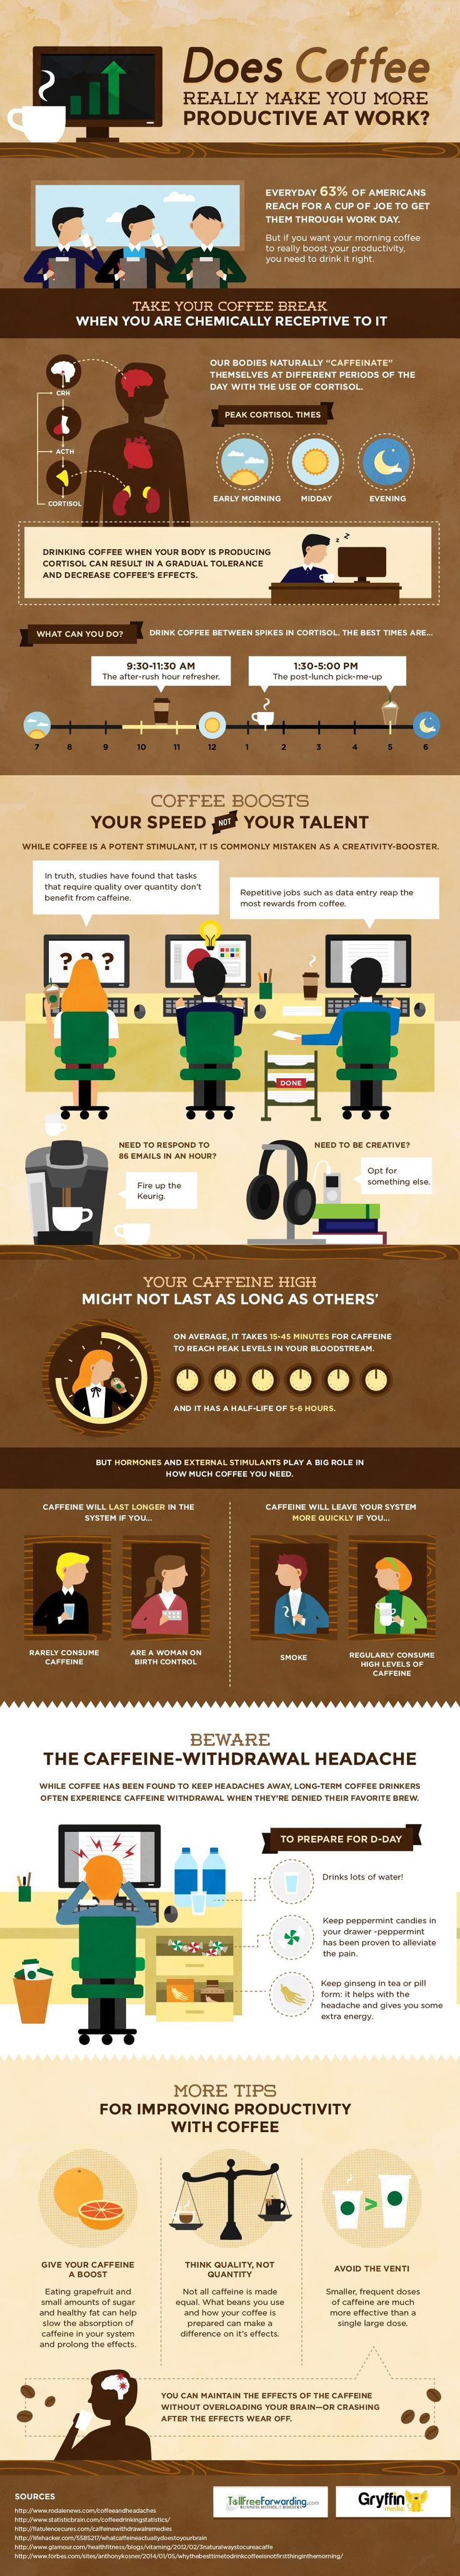 Does Drinking Coffee Really Make You More Productive?   image